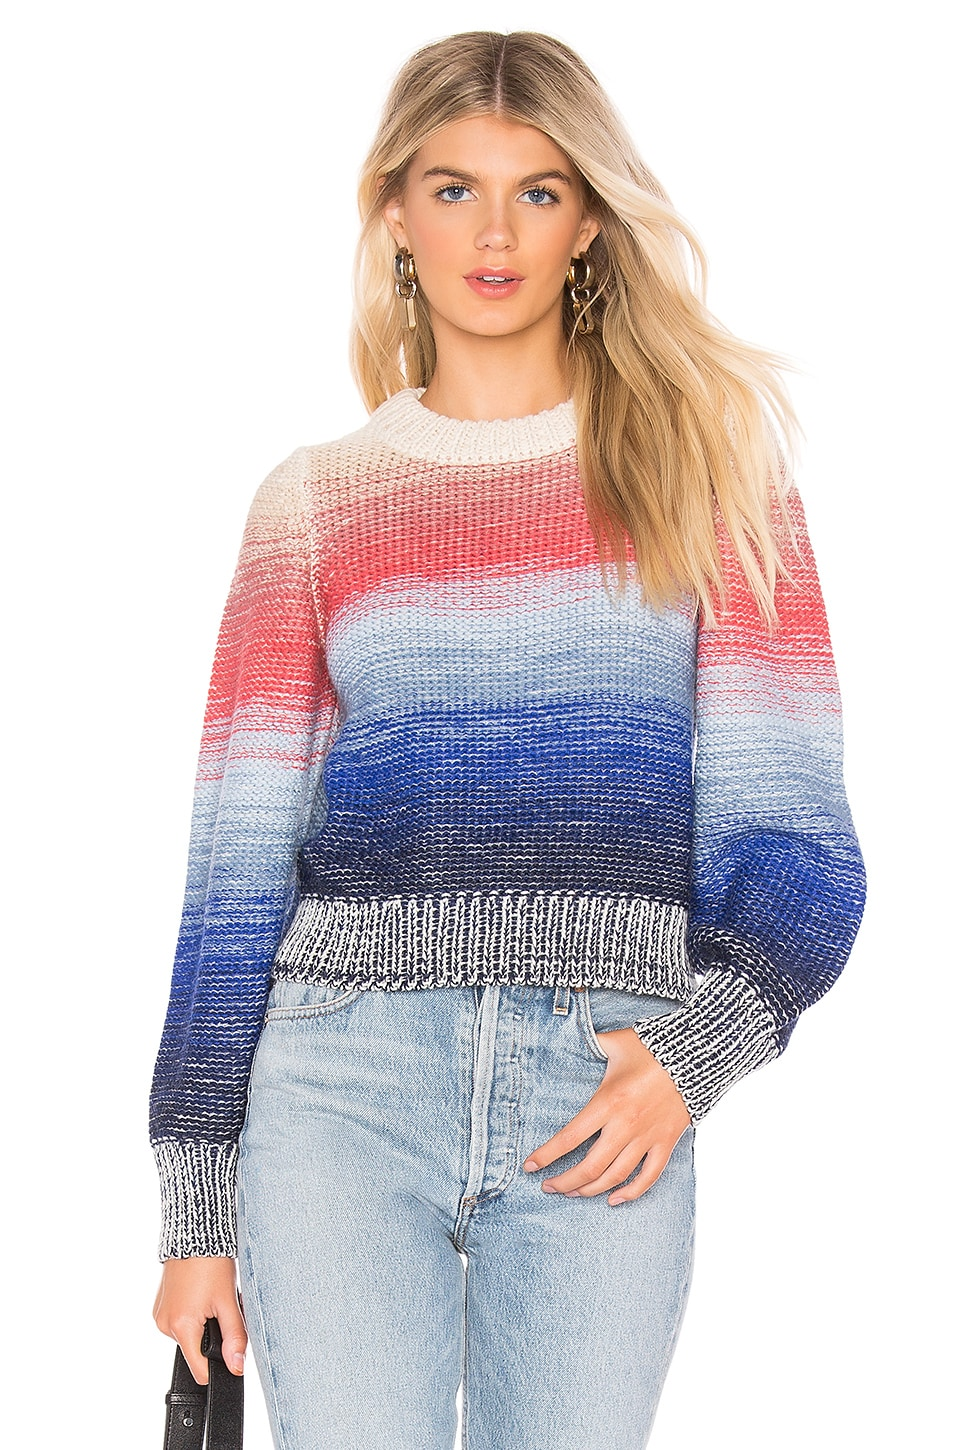 Eleven Six ELEVEN SIX LUCY SWEATER IN BLUE.